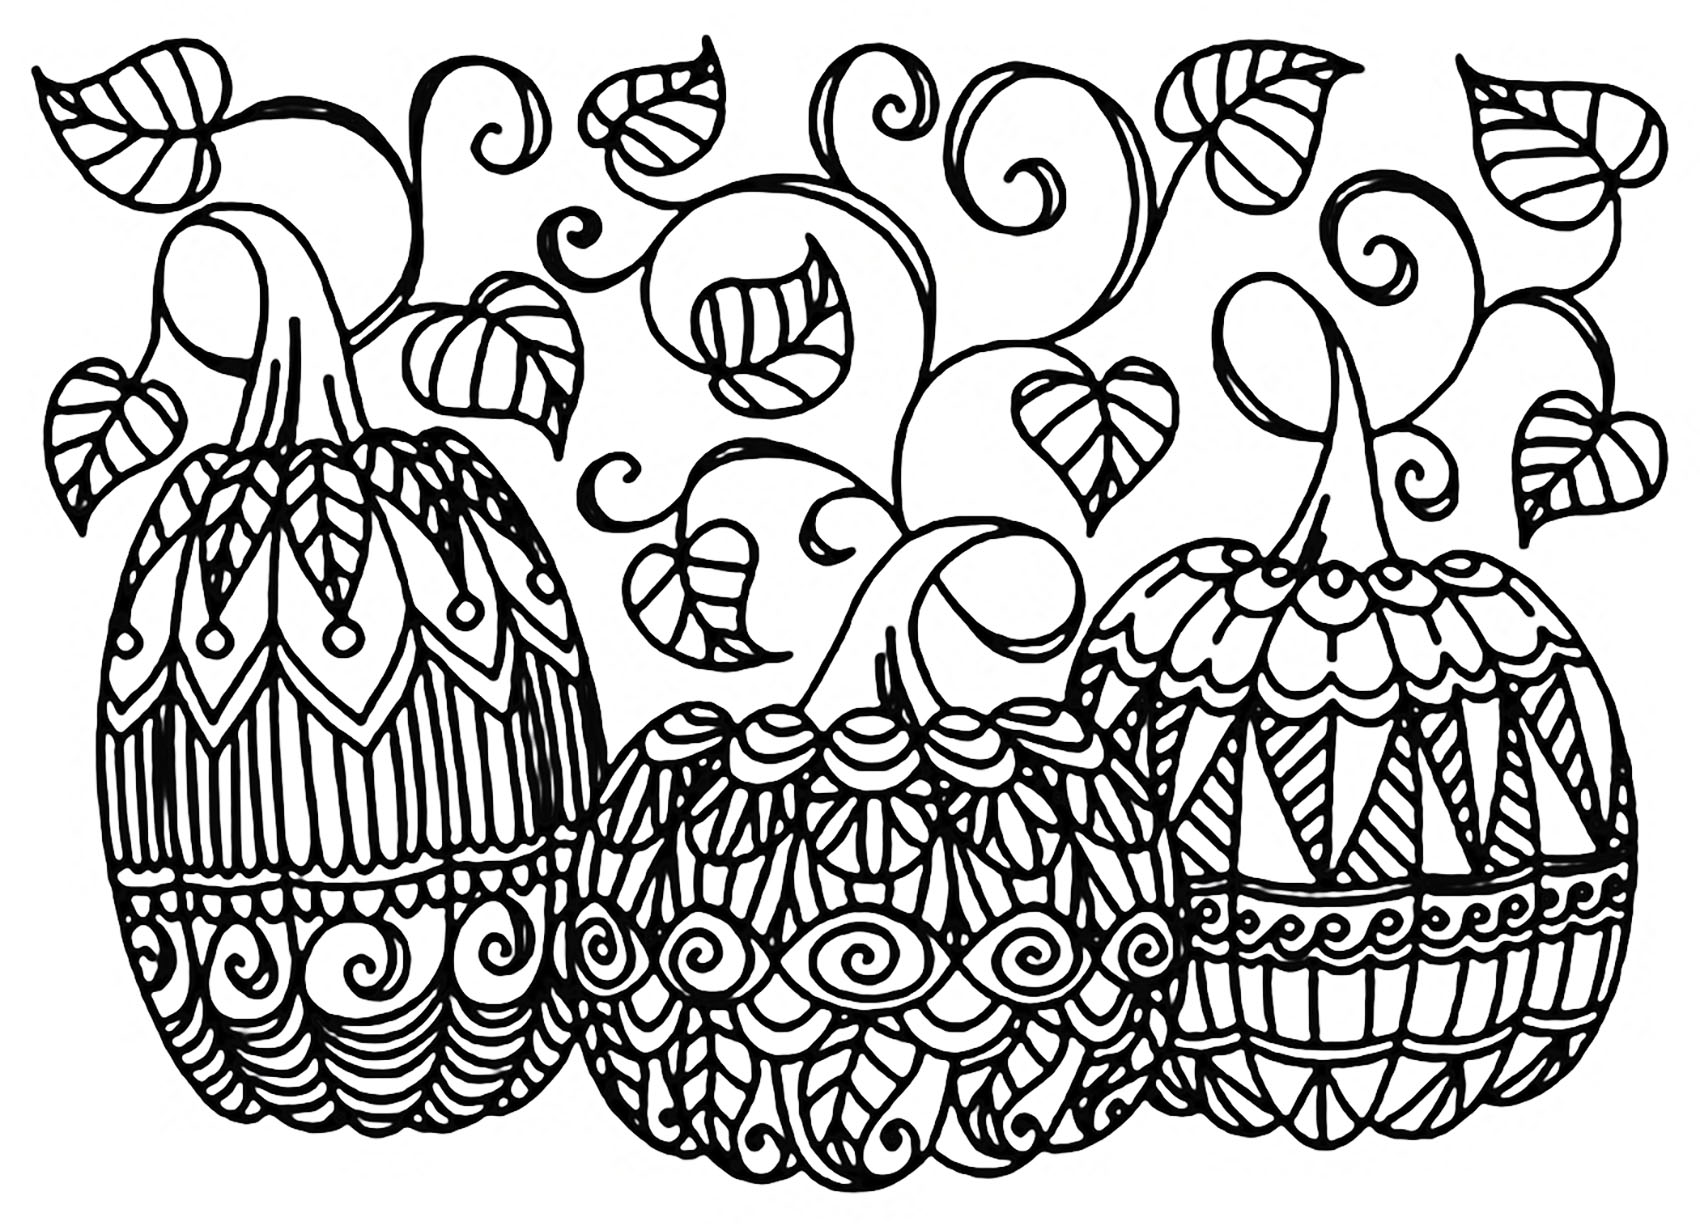 Halloween three pumpkins halloween adult coloring pages for Pumpkin coloring pages for adults